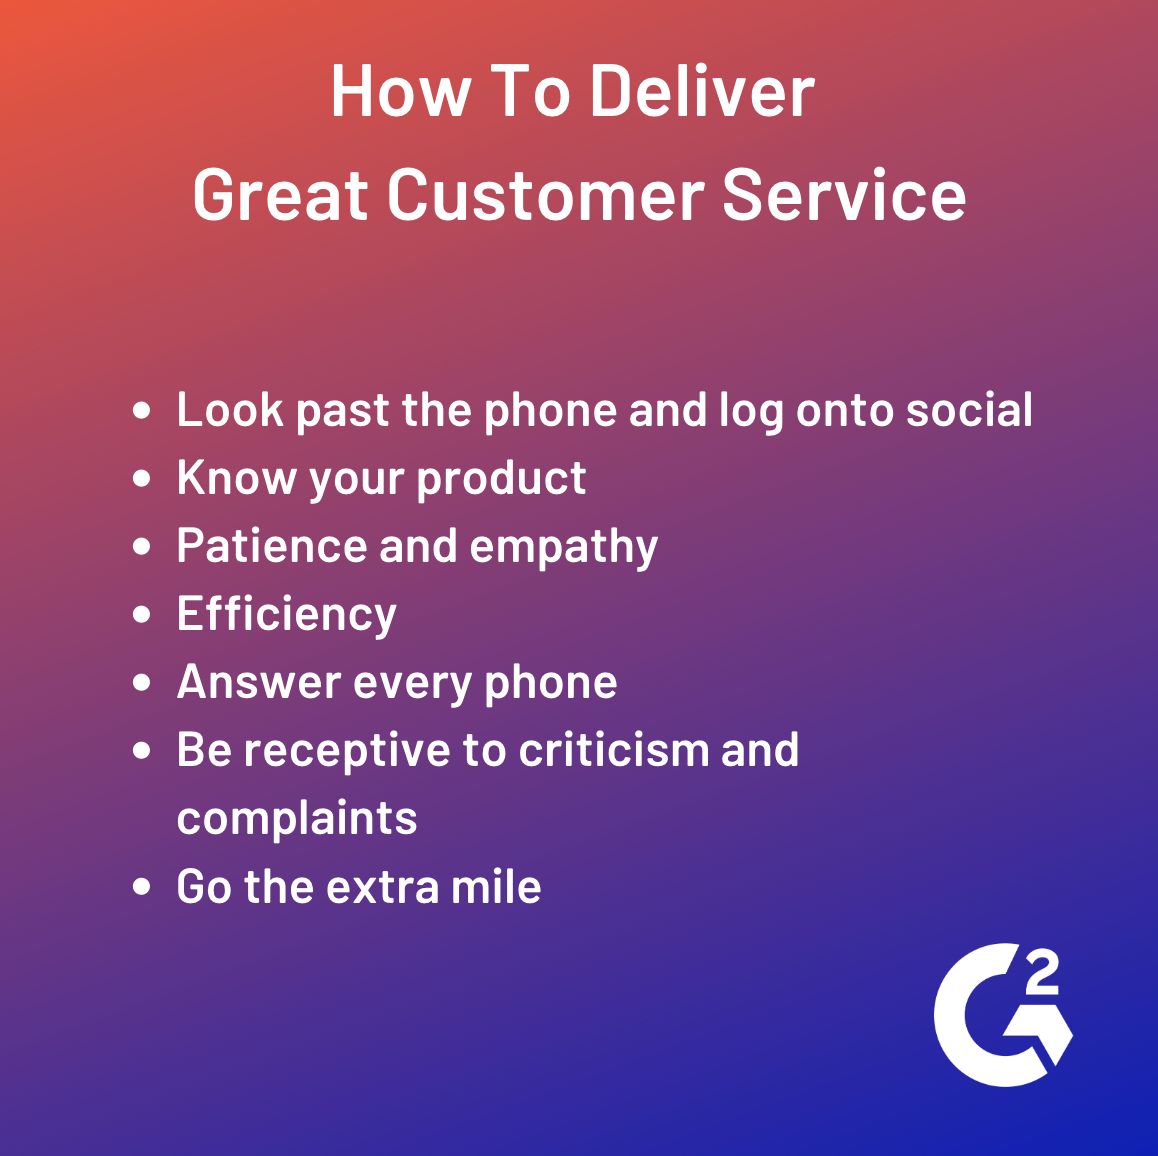 how to deliver great customer service